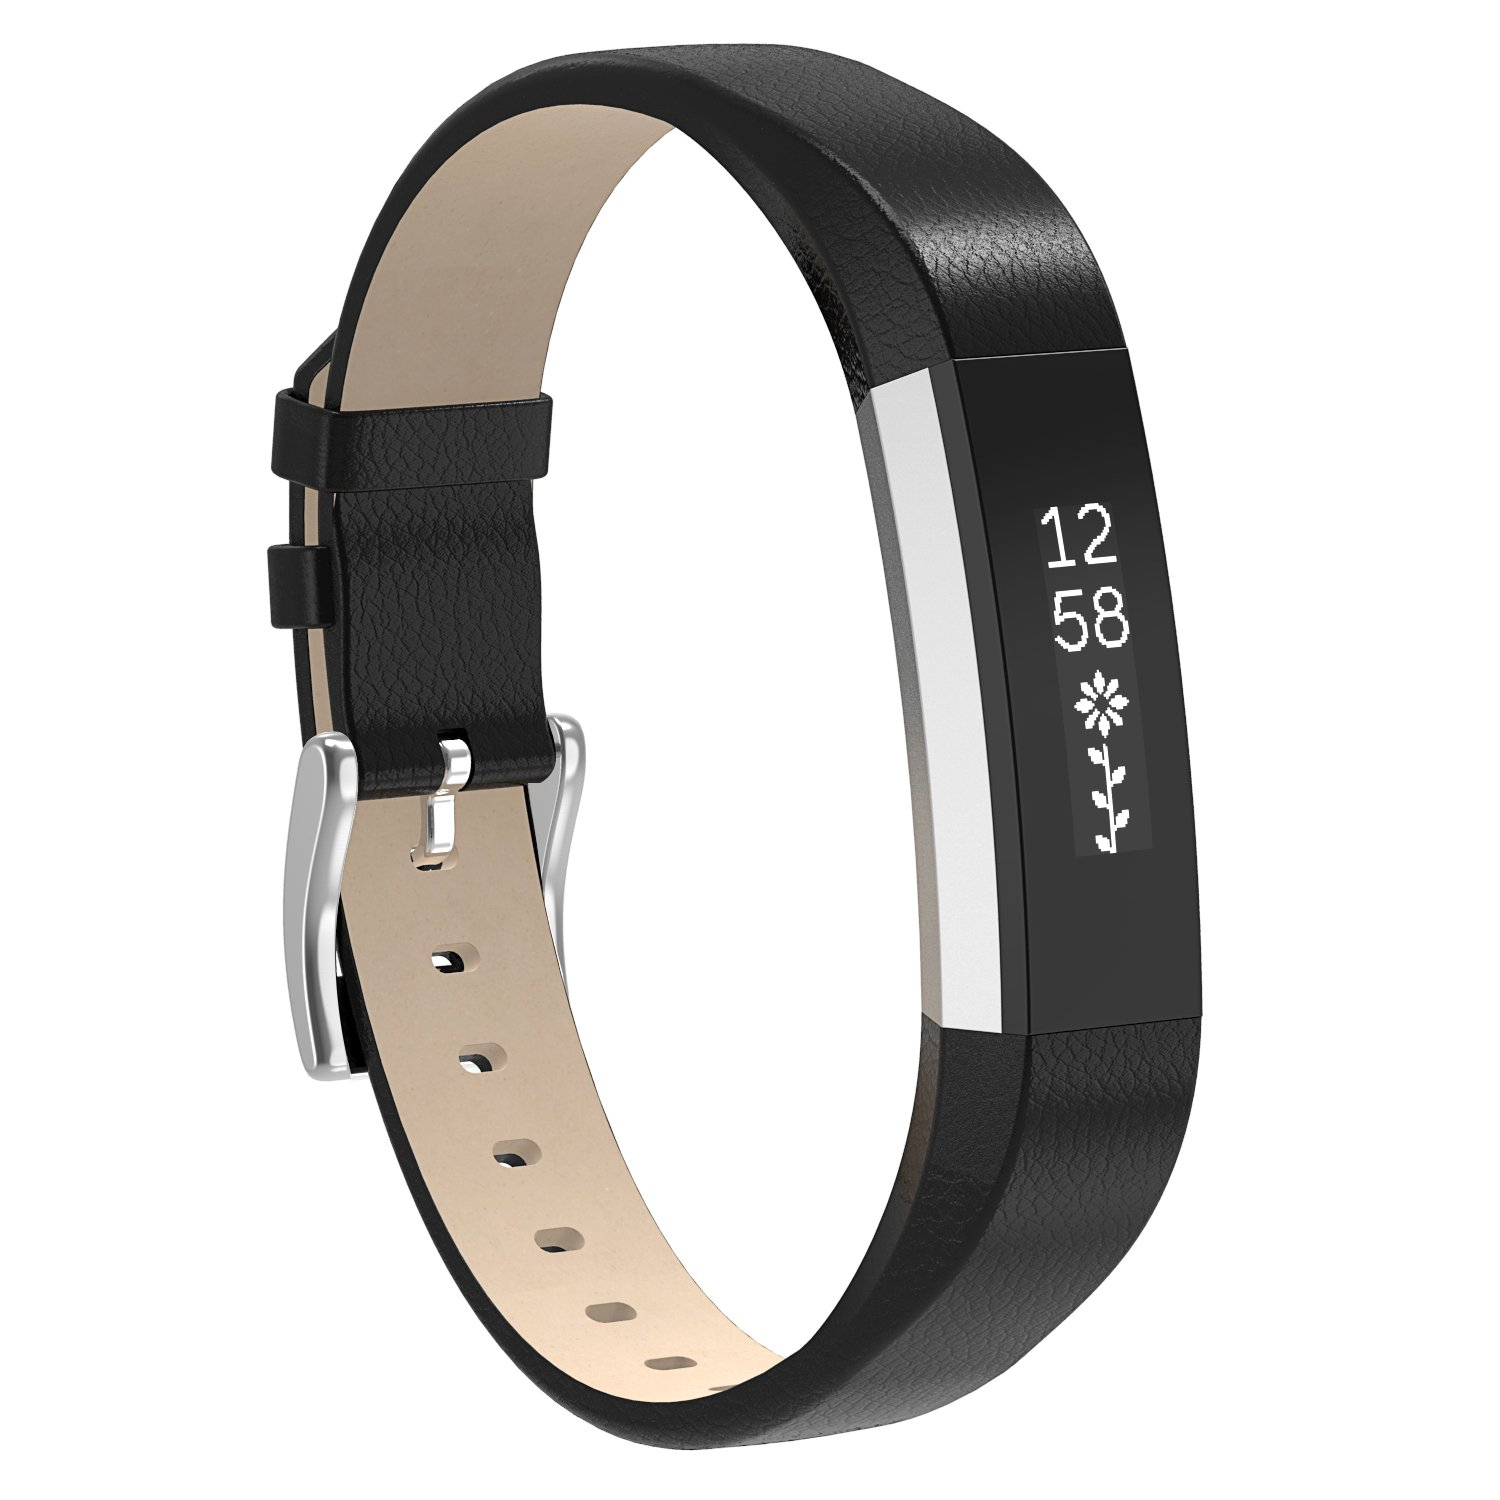 Amazon.com: Fitbit Alta Charging Cable: Health & Personal Care